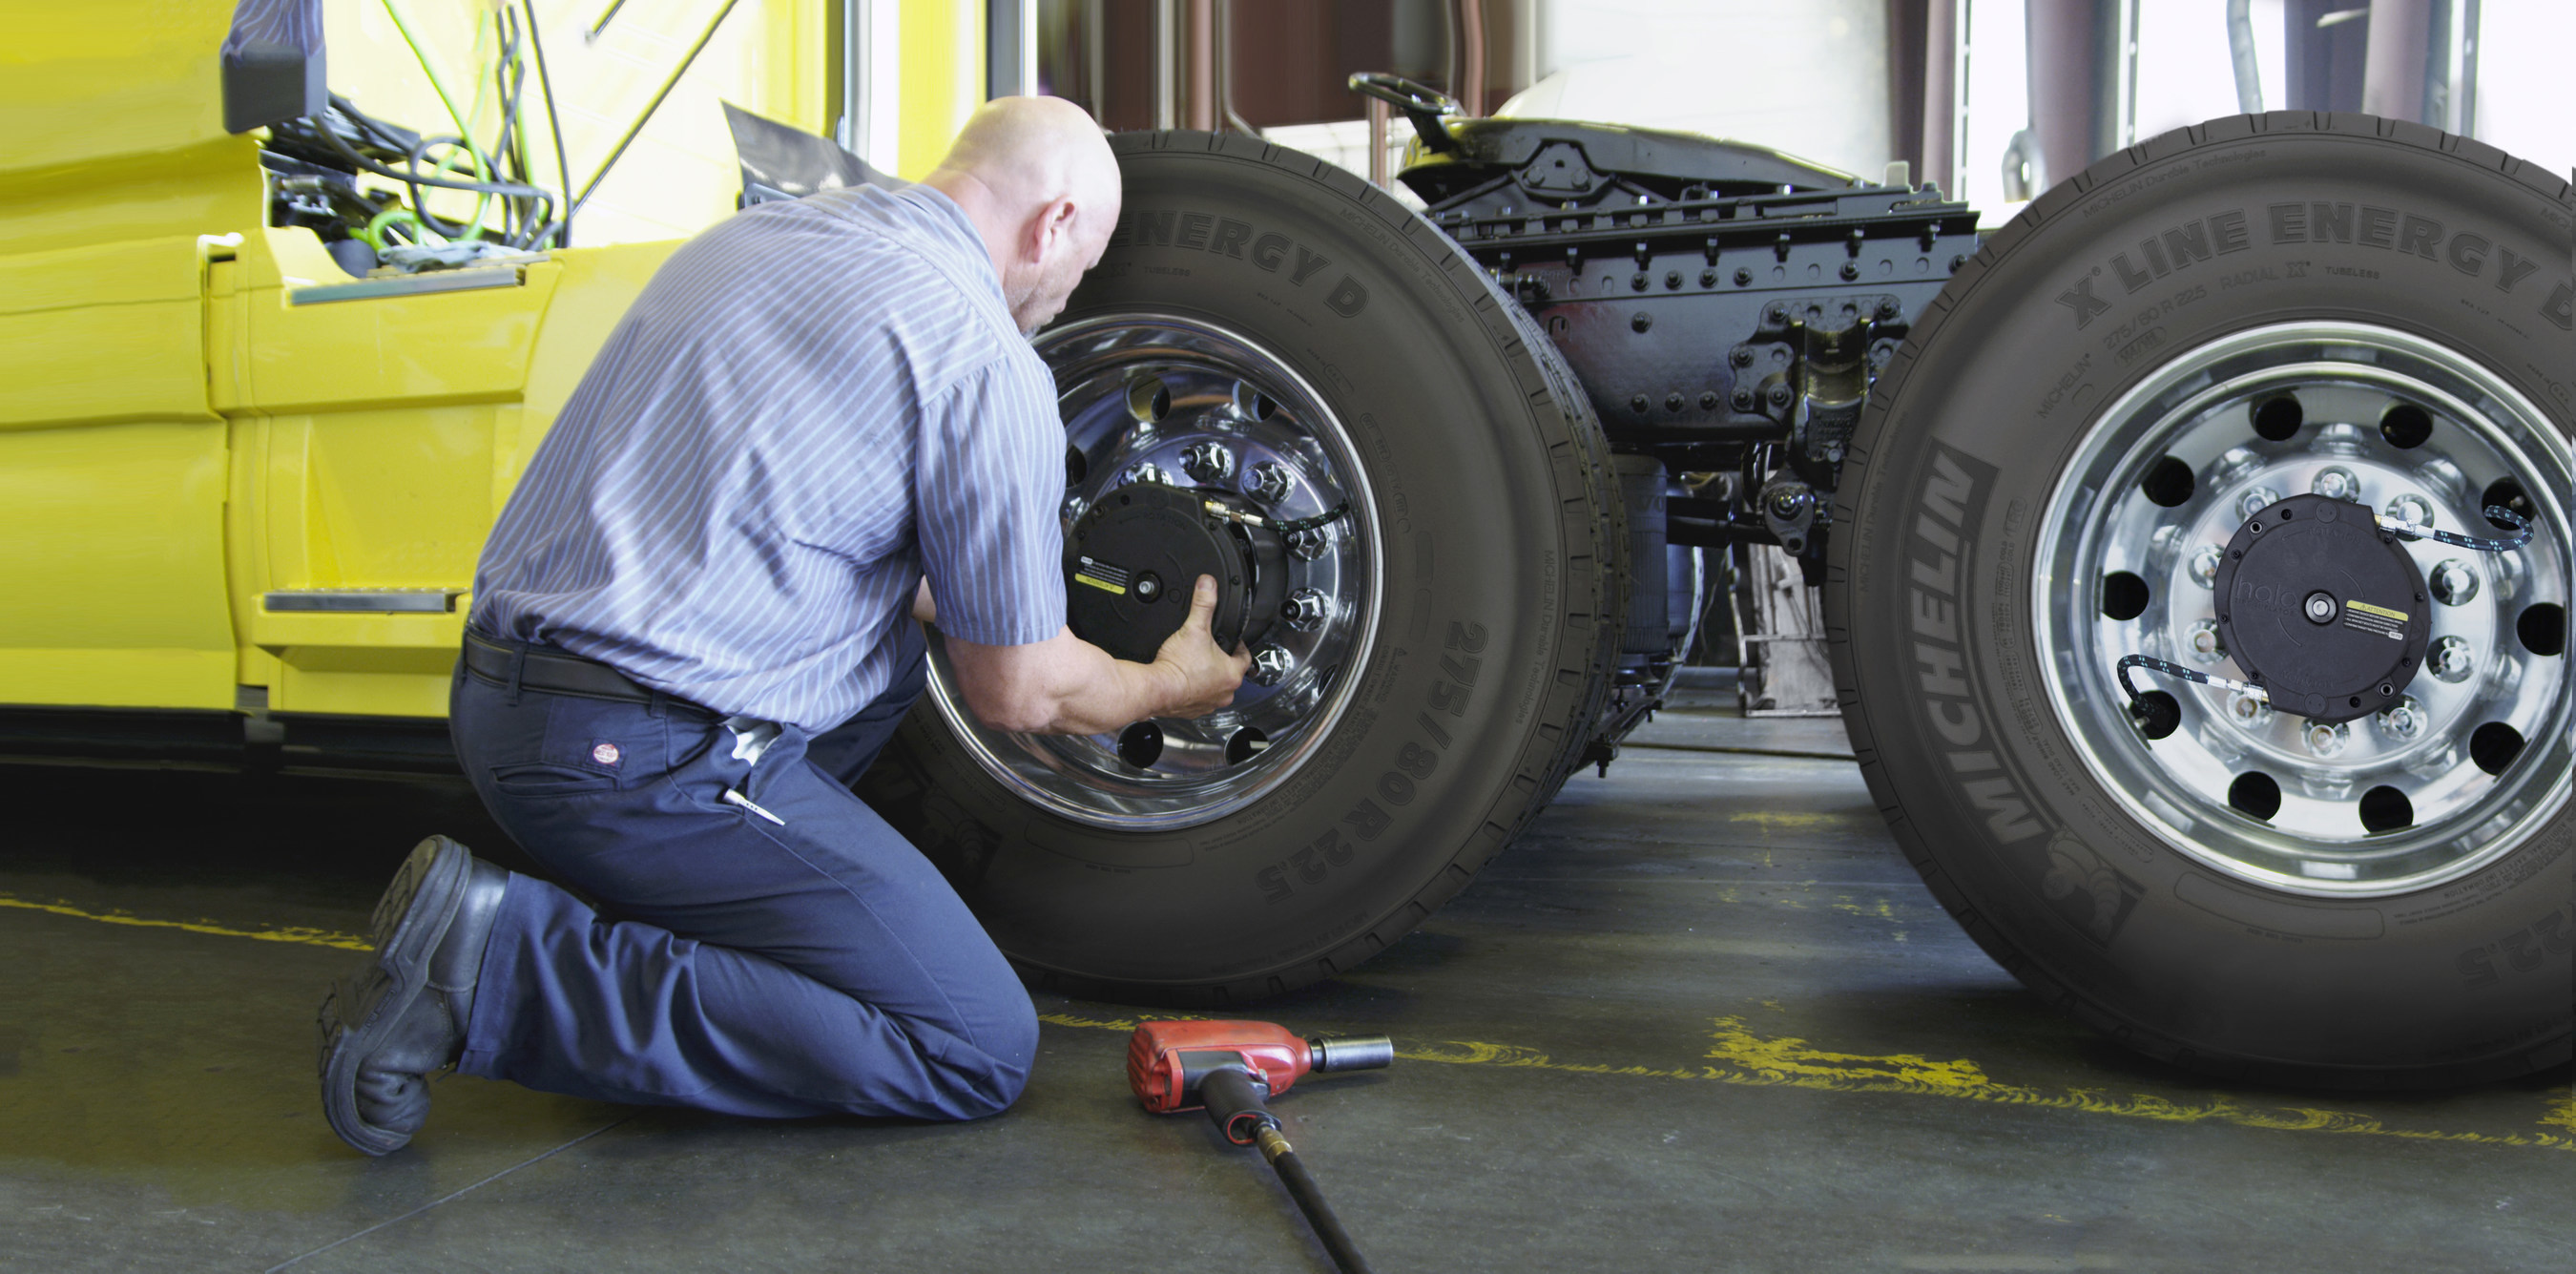 MICHELIN Auto Inflate Answers the Complex Problem of Maintaining Optimal Tire Inflation Pressure on Commercial Trucks